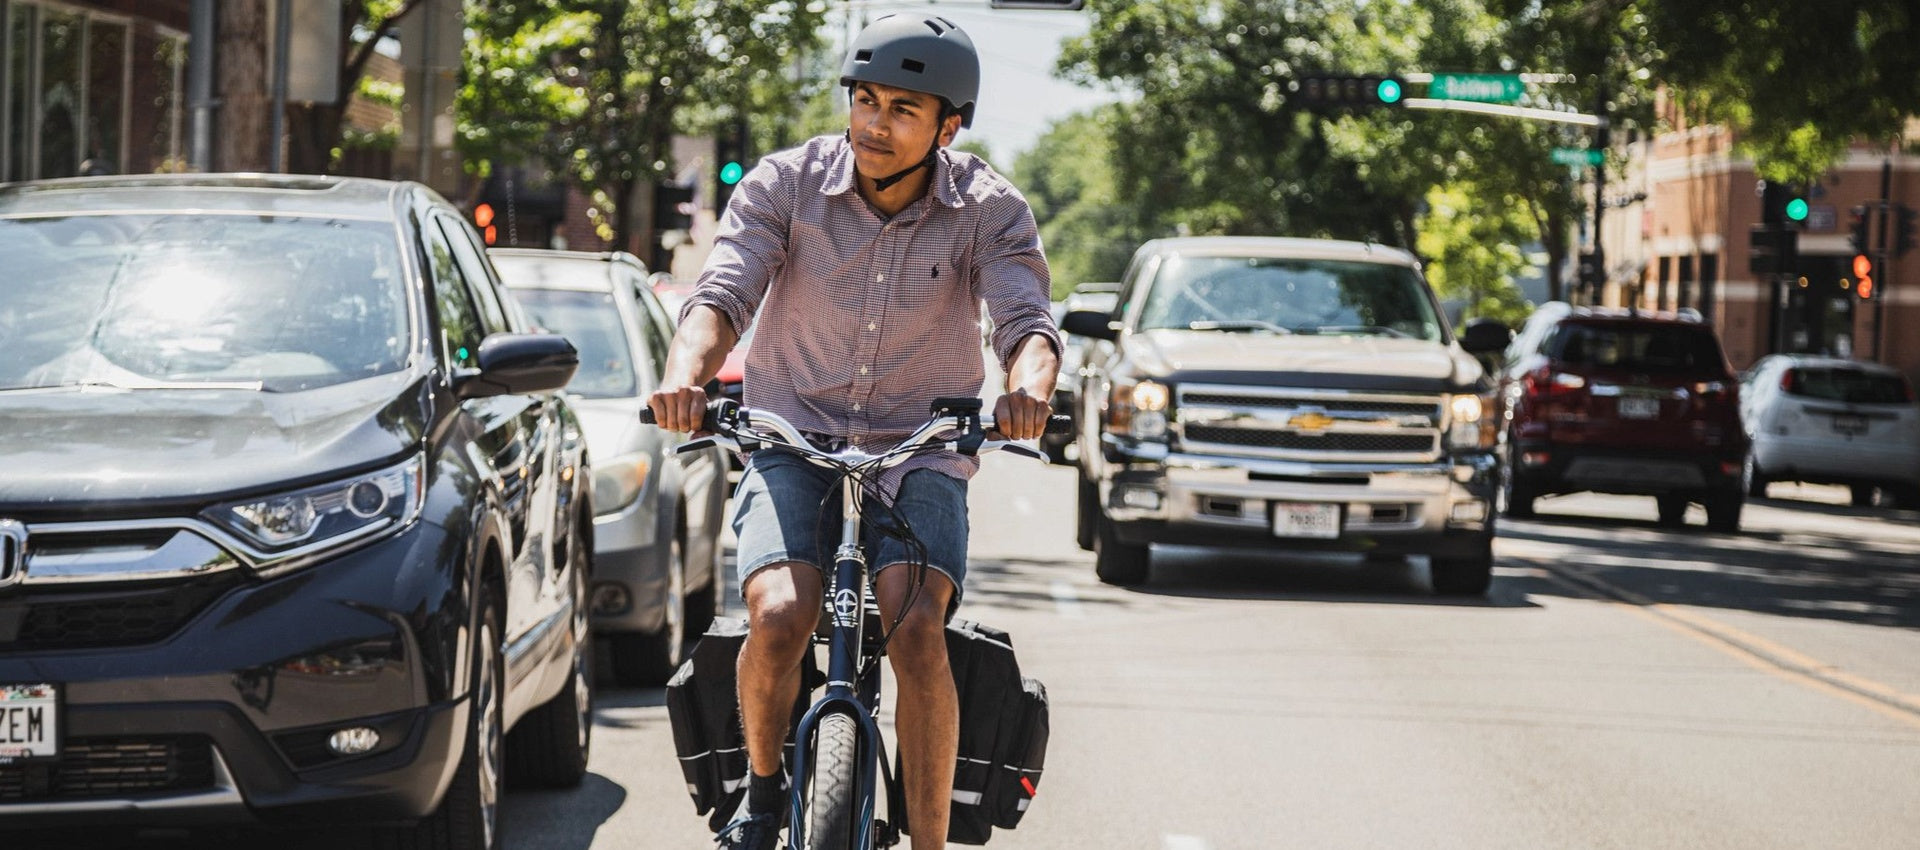 Commuting on a Mendocino eBike